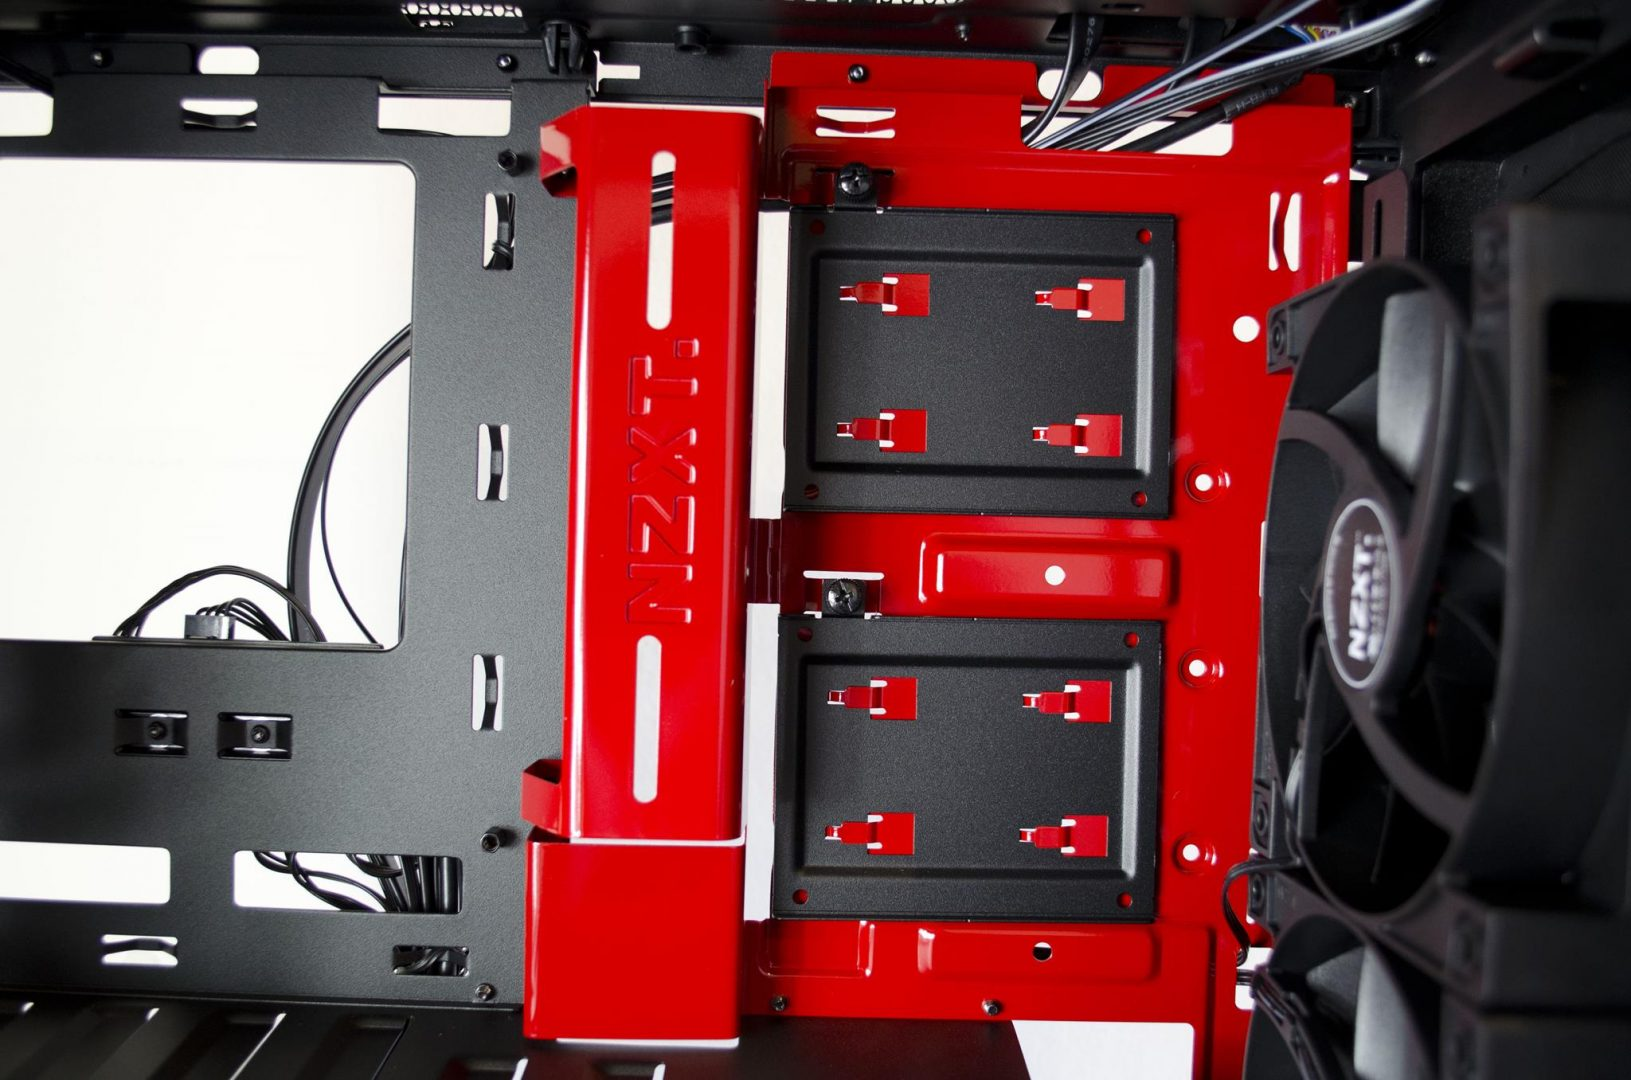 nzxt manta pc case review_7